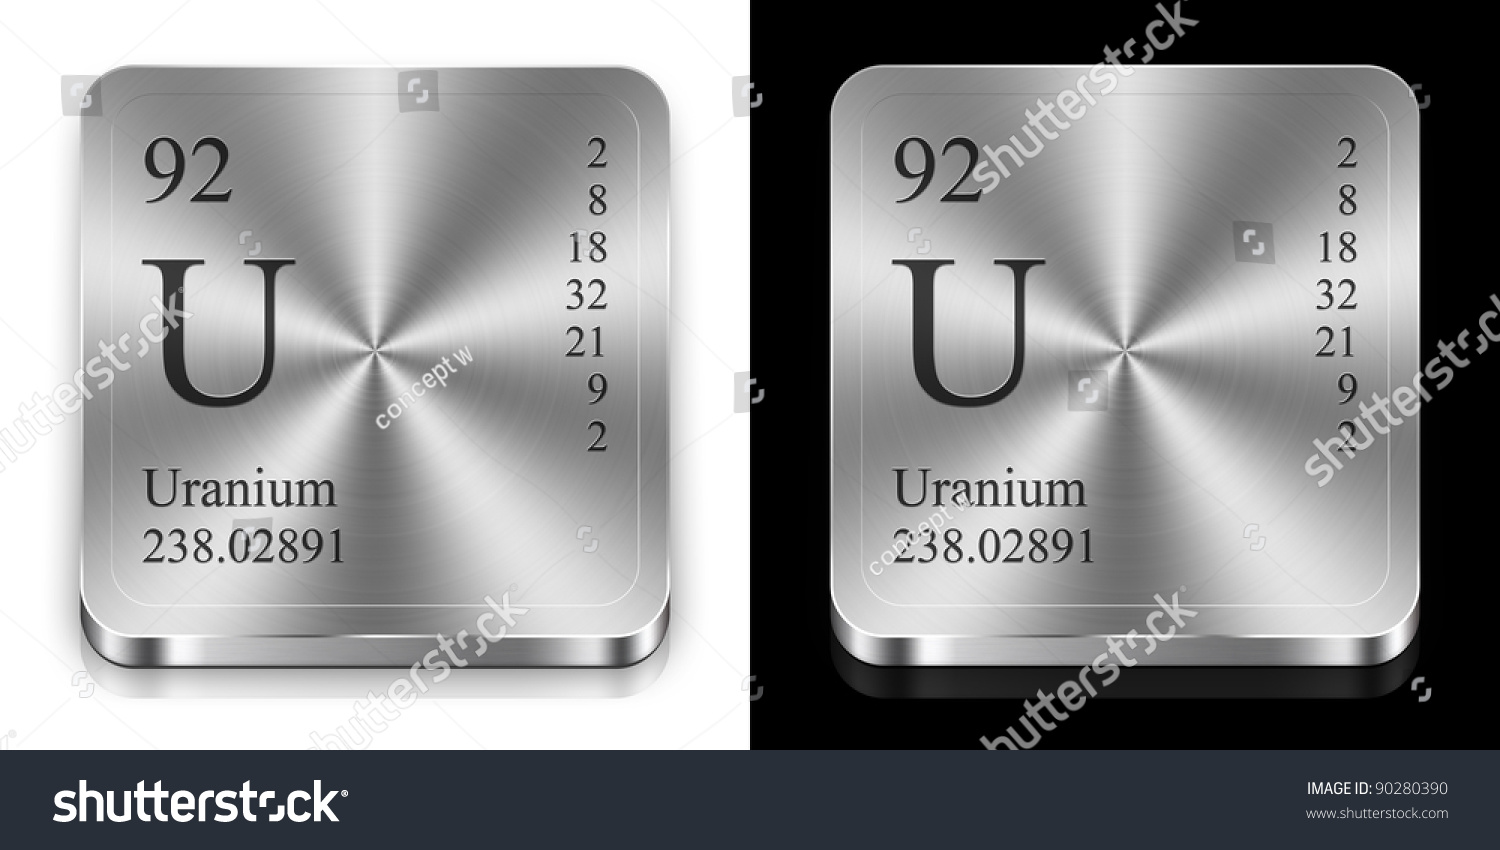 Uranium element periodic table two metal stock illustration uranium element of the periodic table two metal web buttons gamestrikefo Image collections